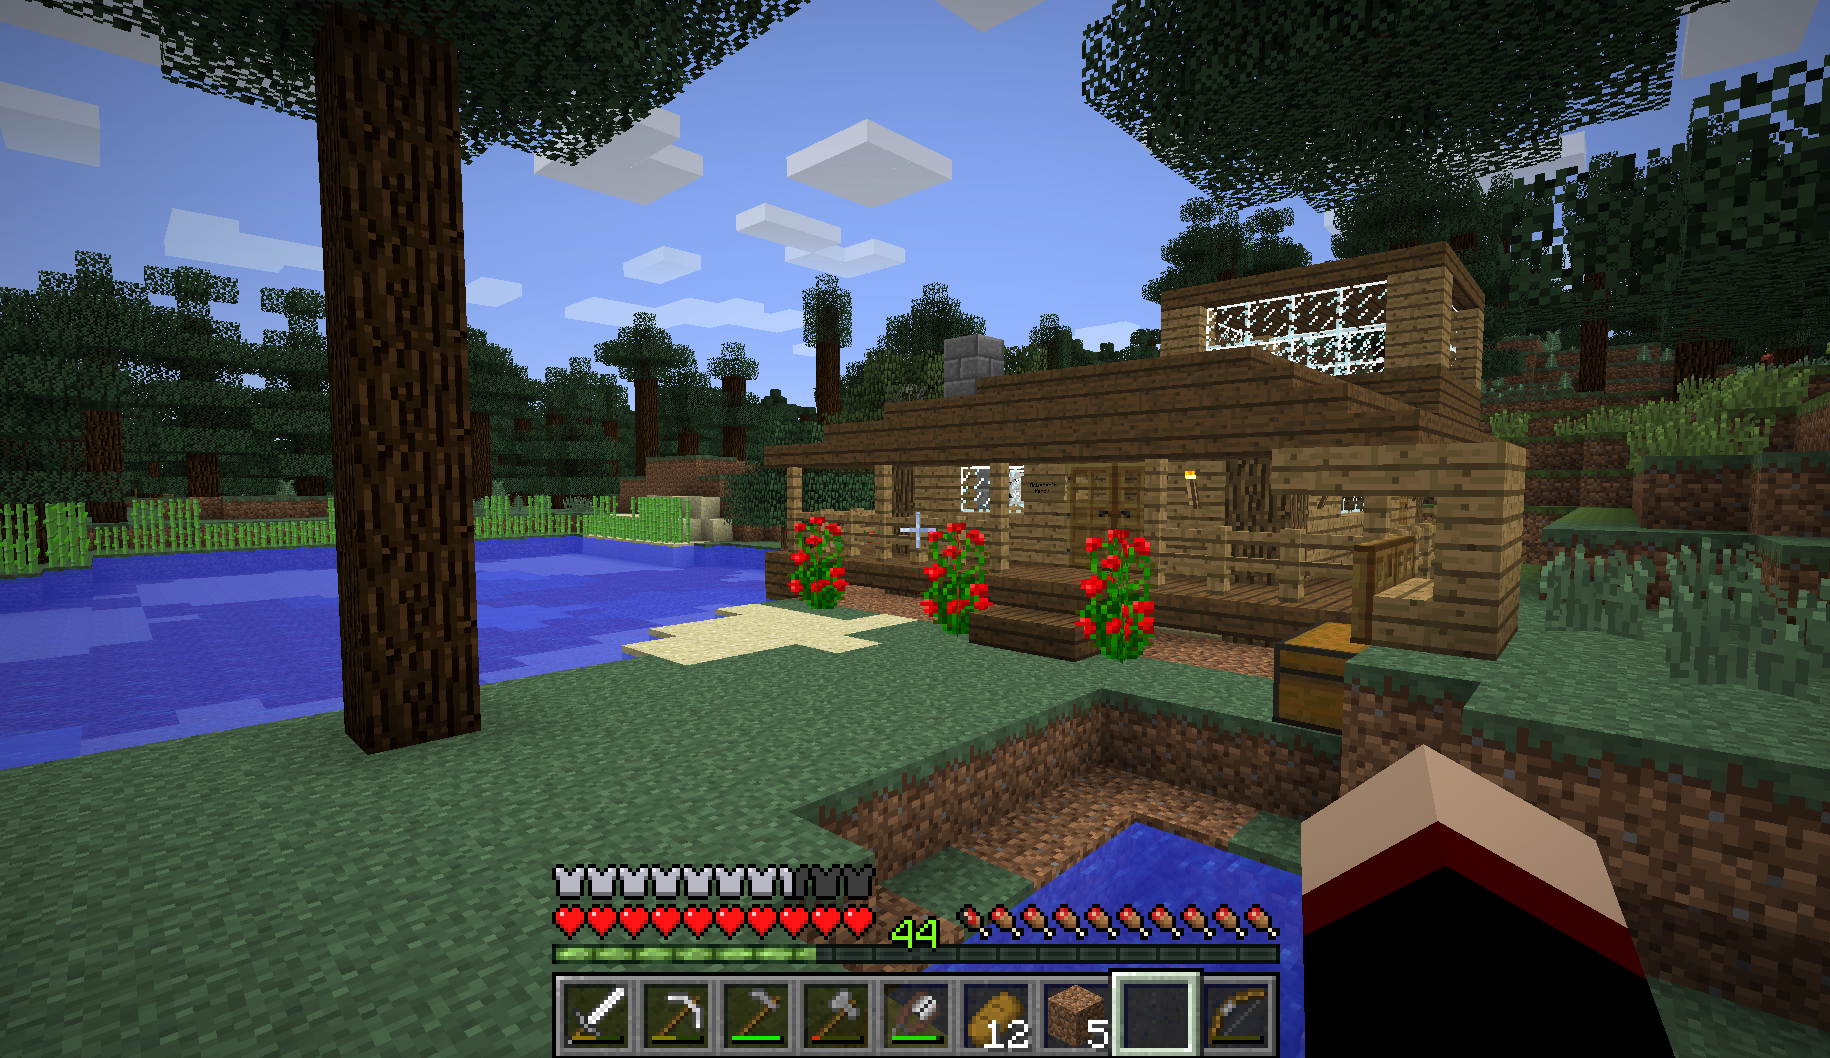 plus belle maison sur minecraft l 39 impression 3d